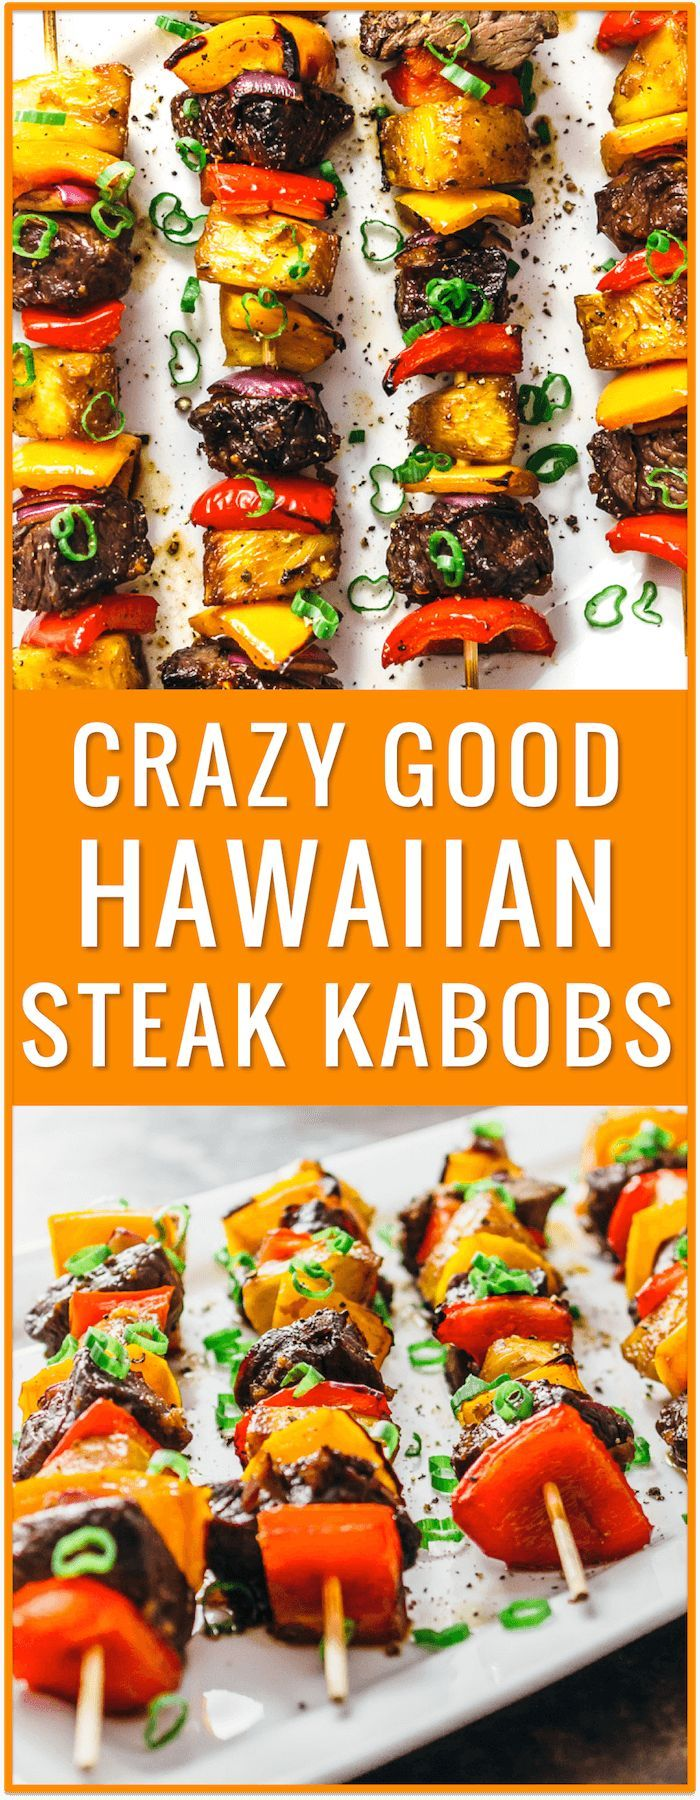 Crazy good Hawaiian steak kabobs, Hawaiian steak marinade, easy, recipe, grilling, broiling, baking, beef kabobs on the grill, beef kabob marinade, baked kabobs, ground beef kabobs, beef kabobs in the oven, broiled kabobs, with rice, marinated, sides, greek, teriyaki, healthy, shrimp via @savory_tooth. Sponsored.